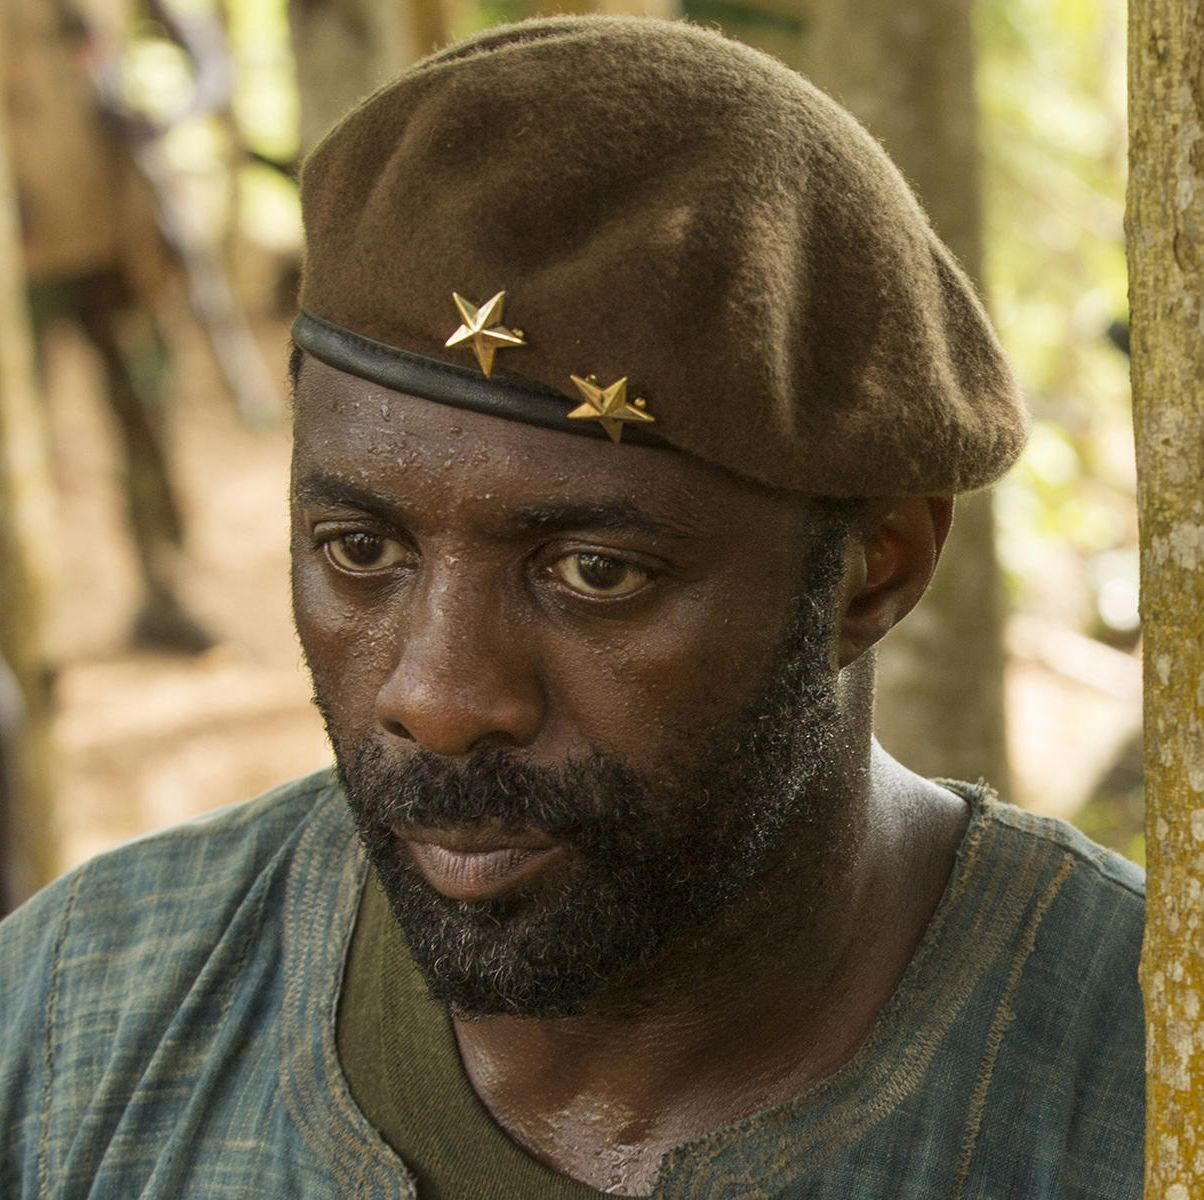 Beasts of No Nation A young boy named Agu is forced into joining a team of rebellion forces to fight in a bloody civil war that has torn his unnamed West African country apart. Idris Elba stars as the charismatic rebel leader, known only as the Commandant, who leads Agu and his fellow soldiers down a dark and violent path.